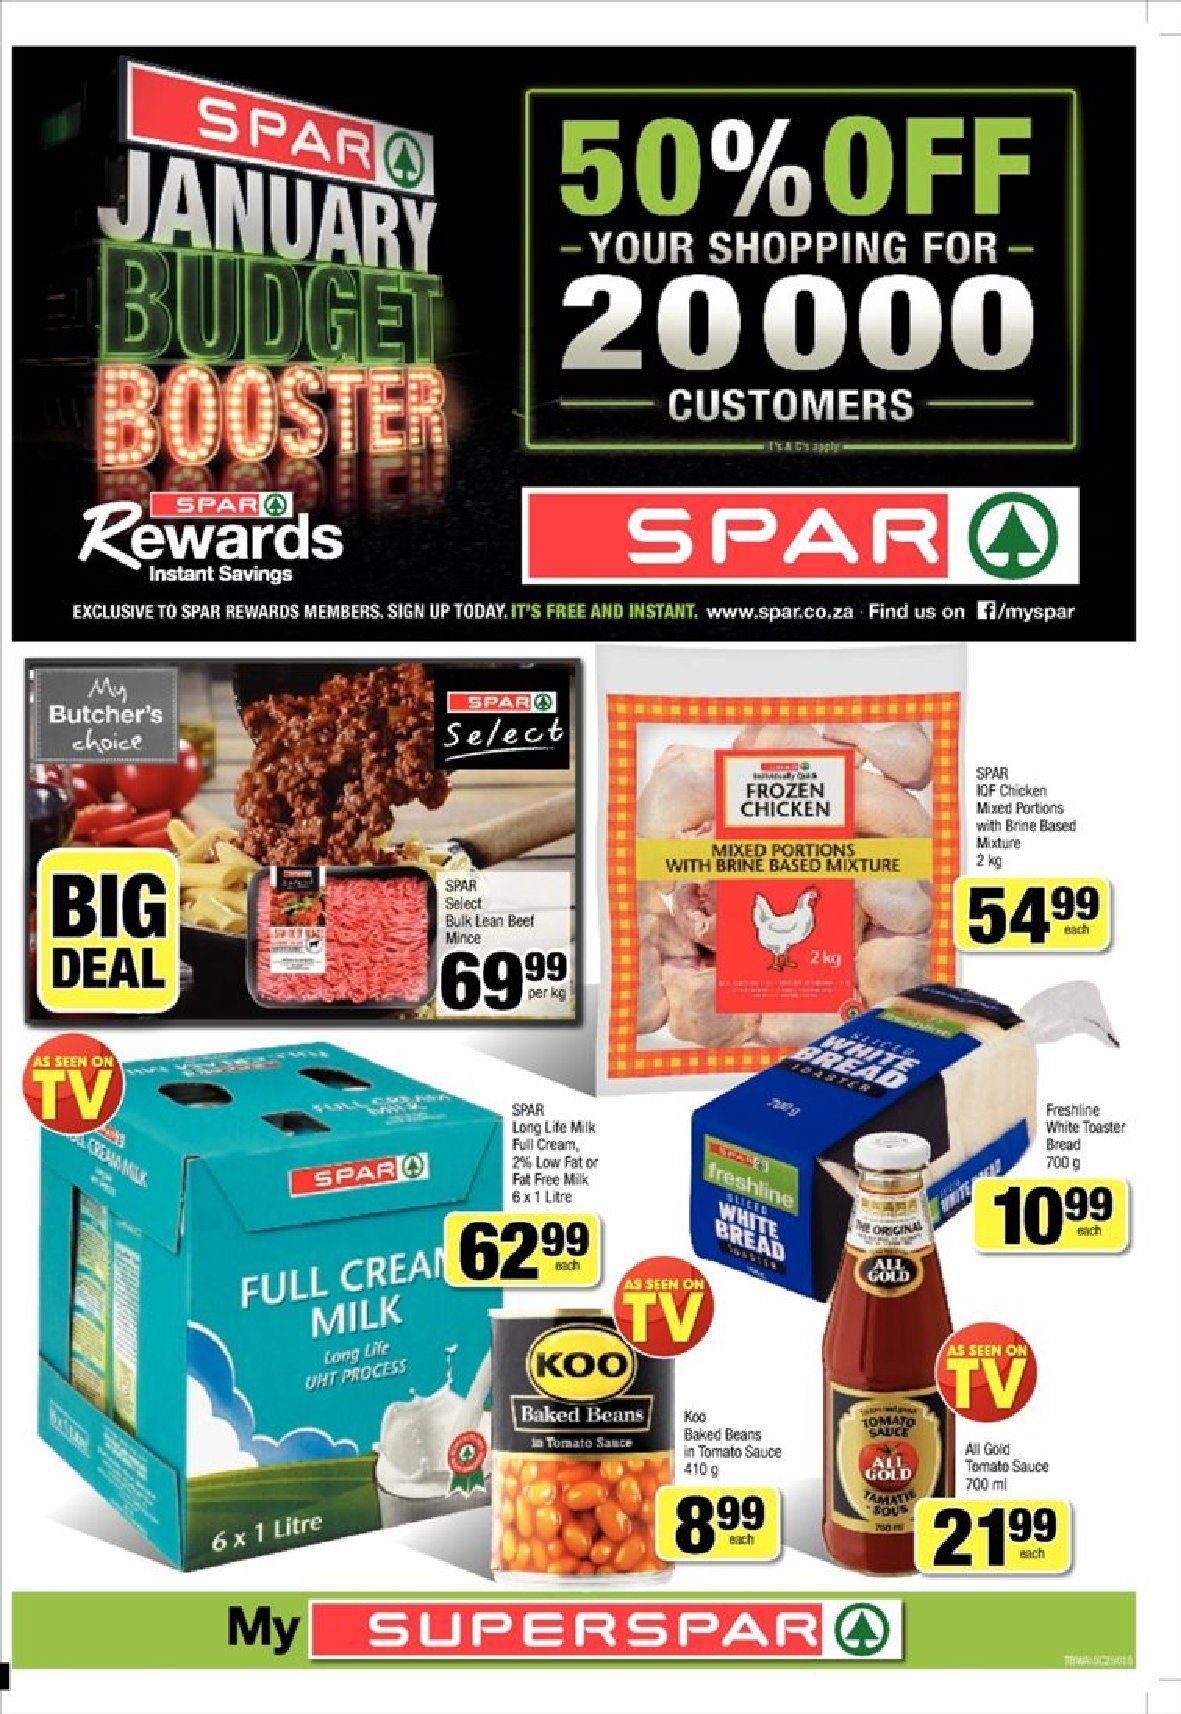 SPAR special - 01.21.2019 - 02.03.2019 - Sales products - beans, beet, bread, cream, milk, tomato sauce, chicken, toaster, sauce. Page 1.